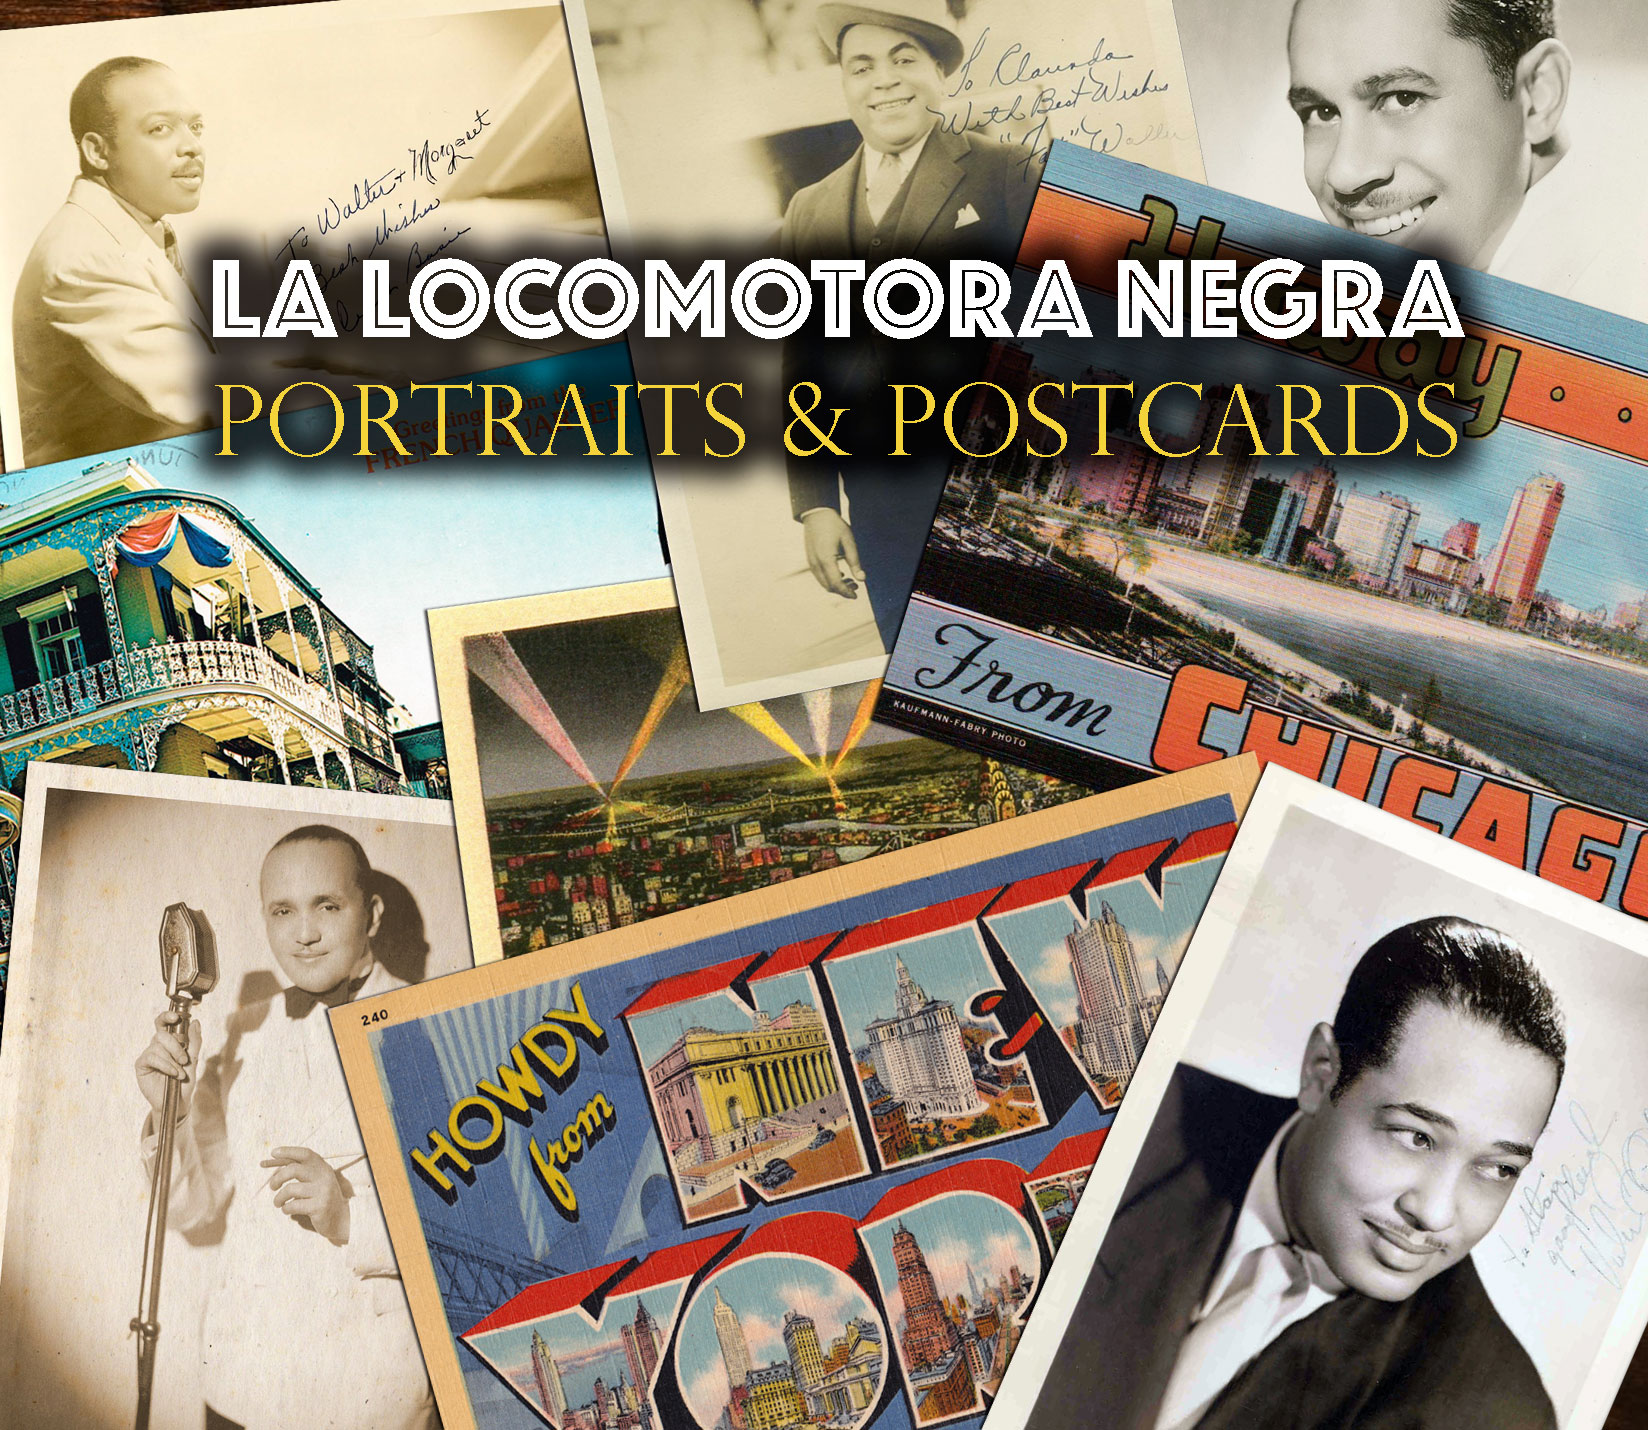 Portraits & Postcards